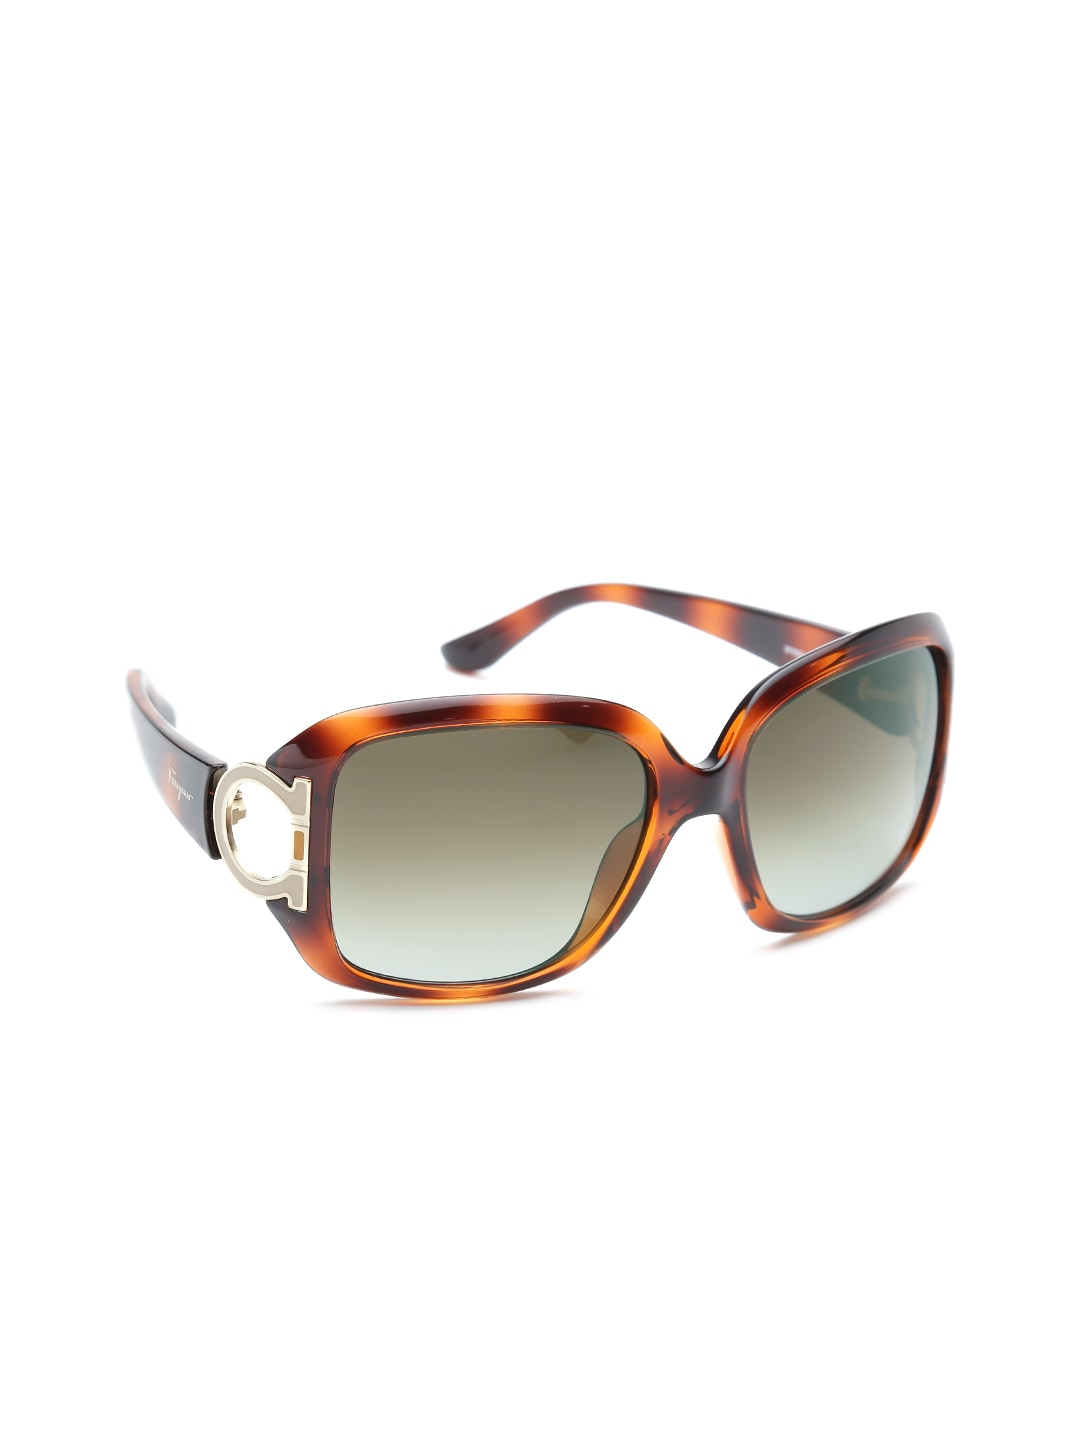 Salvatore Ferragamo Women Printed Square Sunglasses SF666S 238